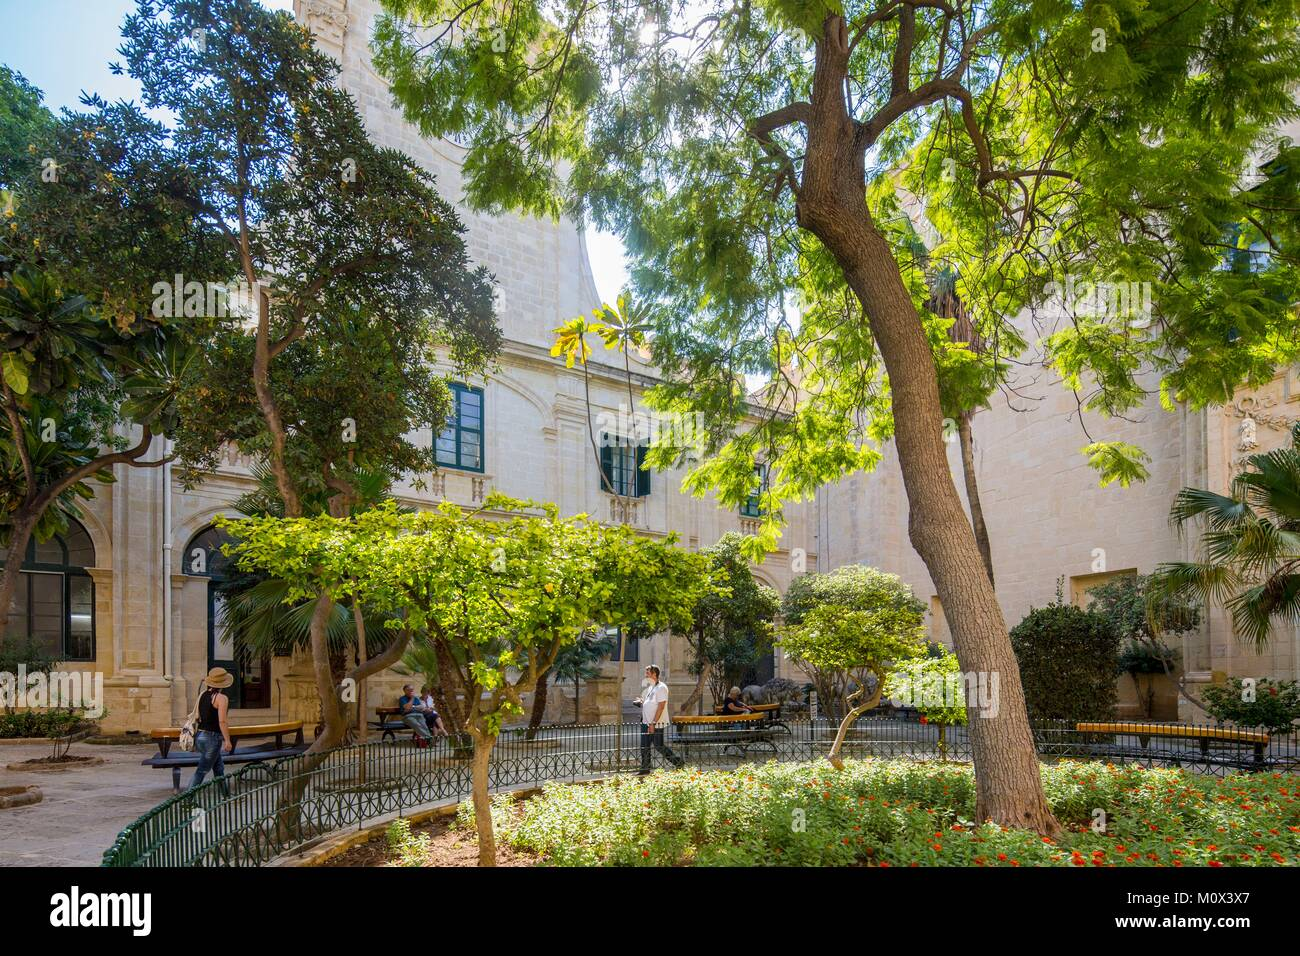 Malta,Valletta,listed as World Heritage by UNESCO,patio in front of the entrance to the Grand Masters palace - Stock Image